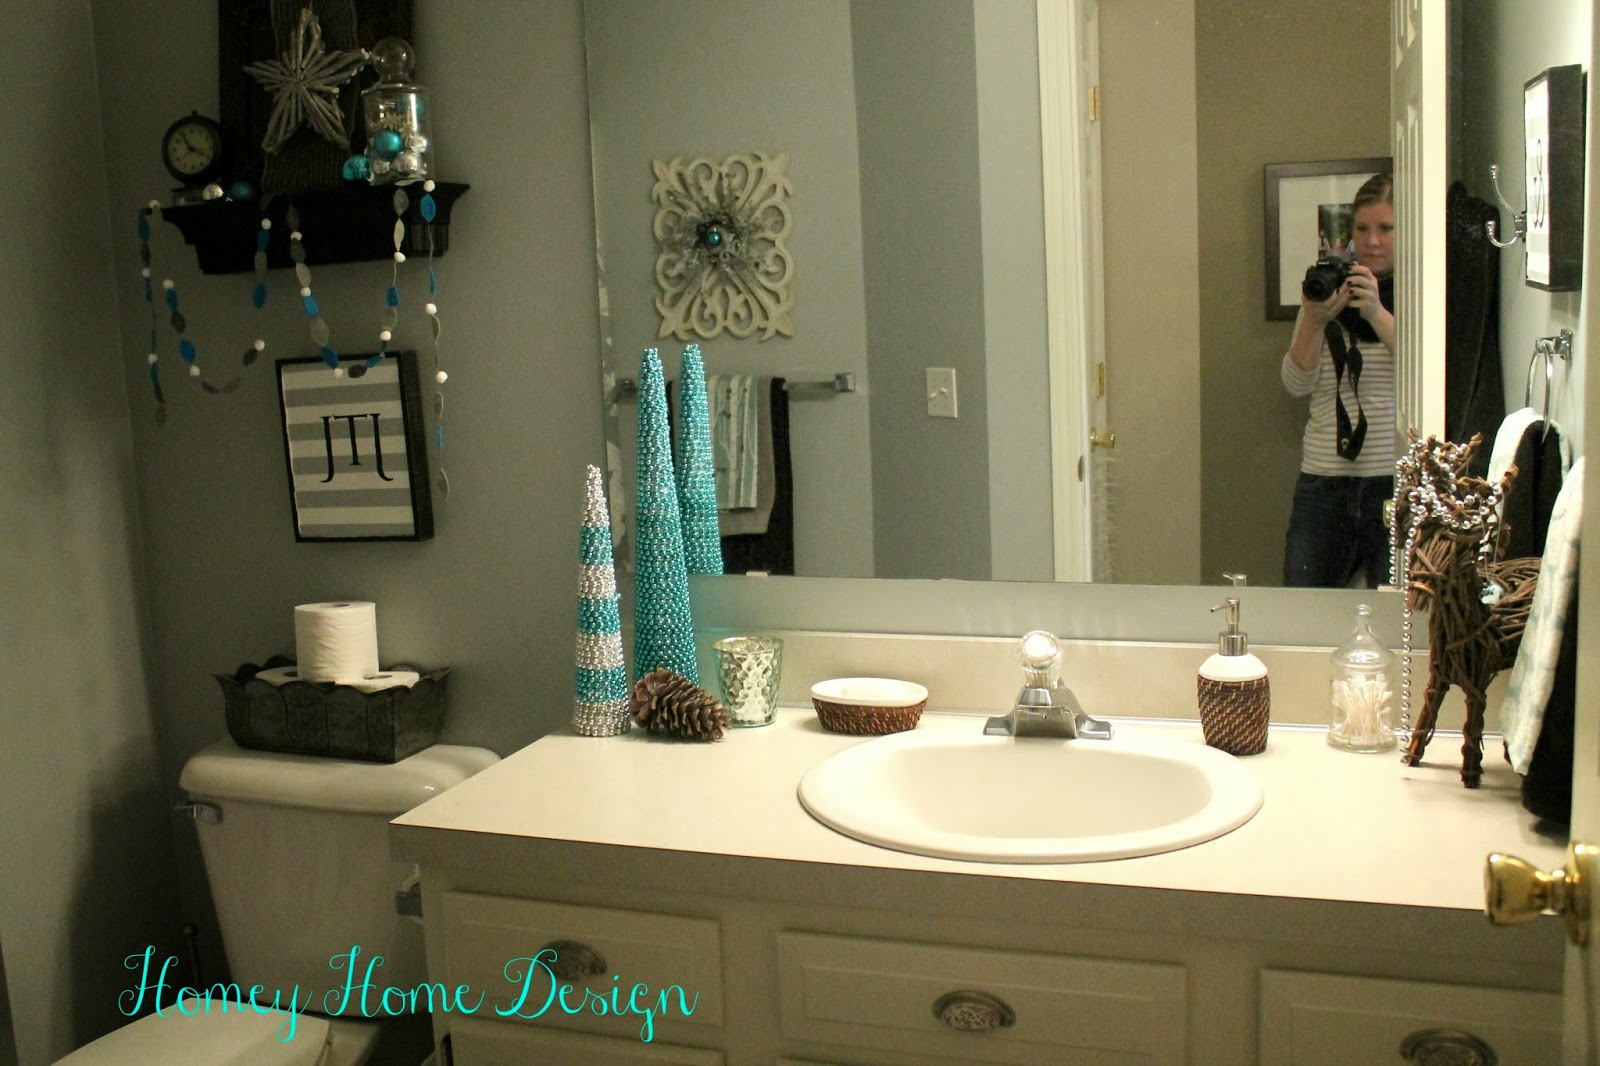 Homey home design bathroom christmas ideas for Bathroom ideas pictures